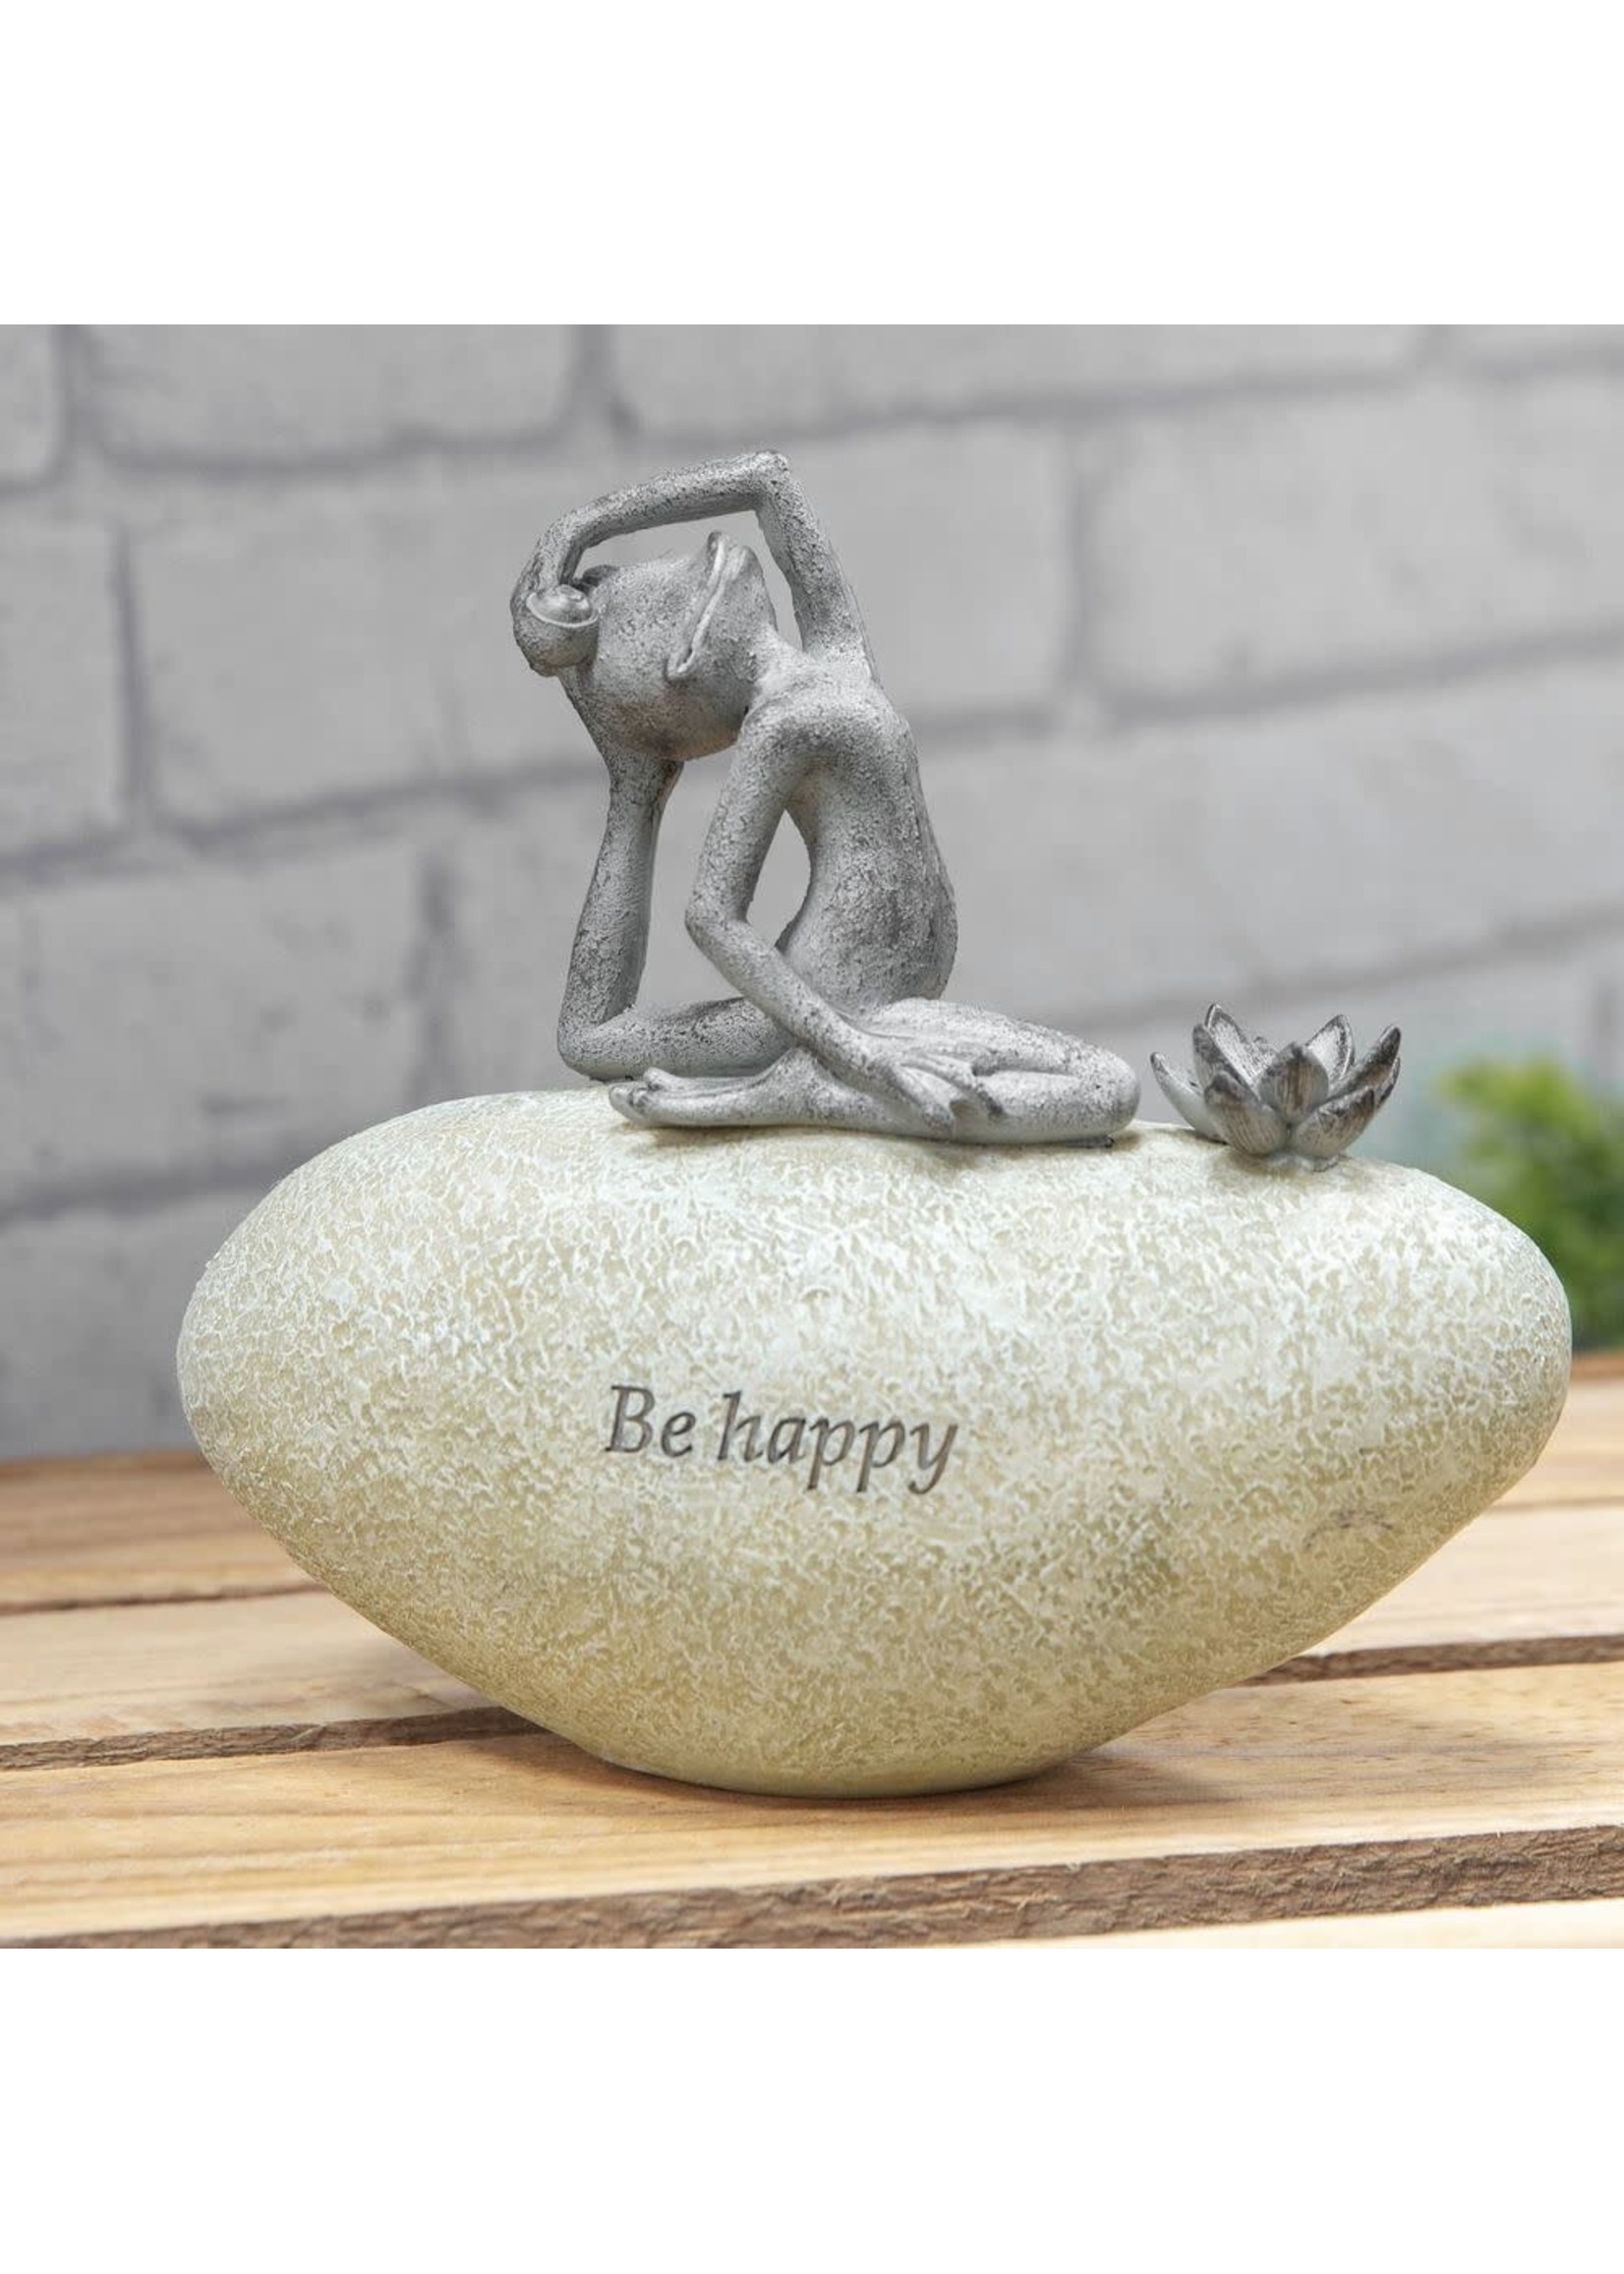 COUNTRY LIVING YOGA FROG ON A STONE - BE HAPPY